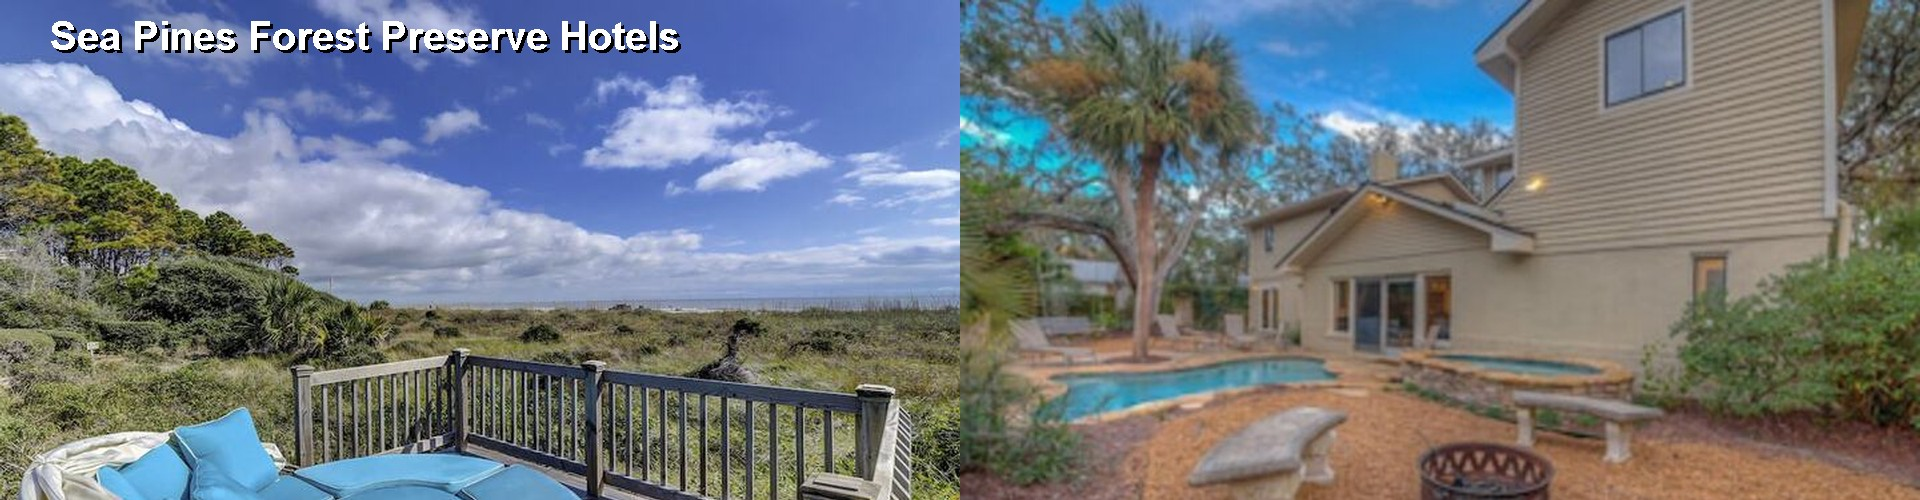 5 Best Hotels Near Sea Pines Forest Preserve